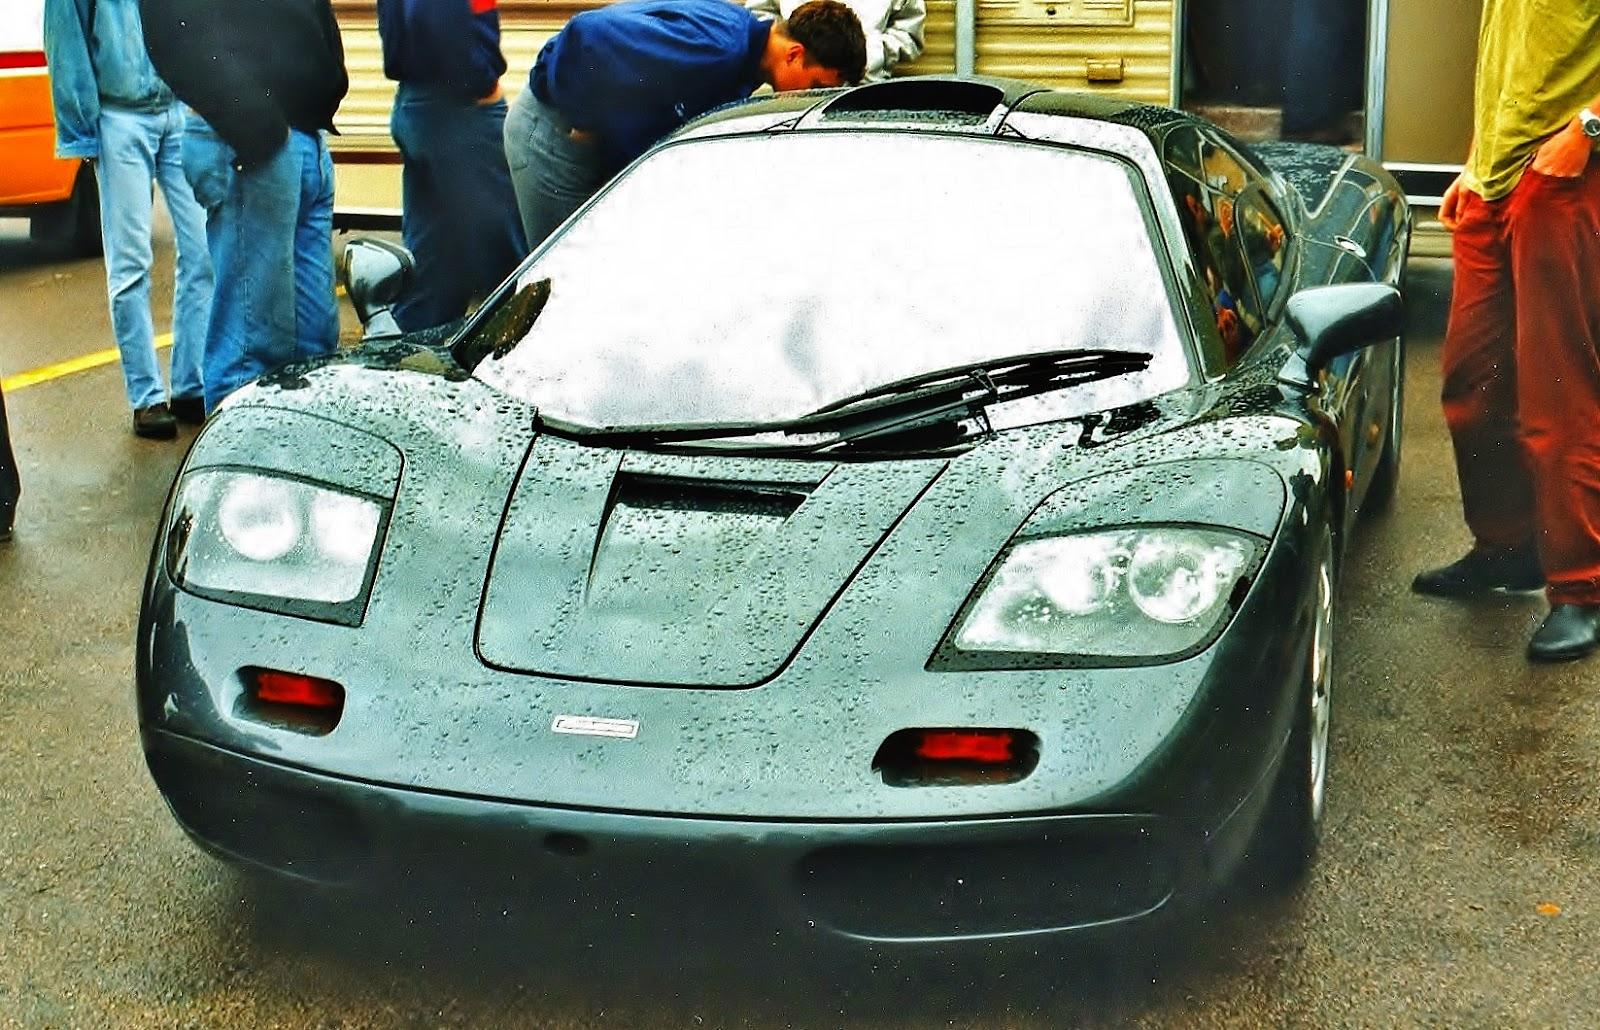 ferraris and other things: mclaren f1 prototype xp4